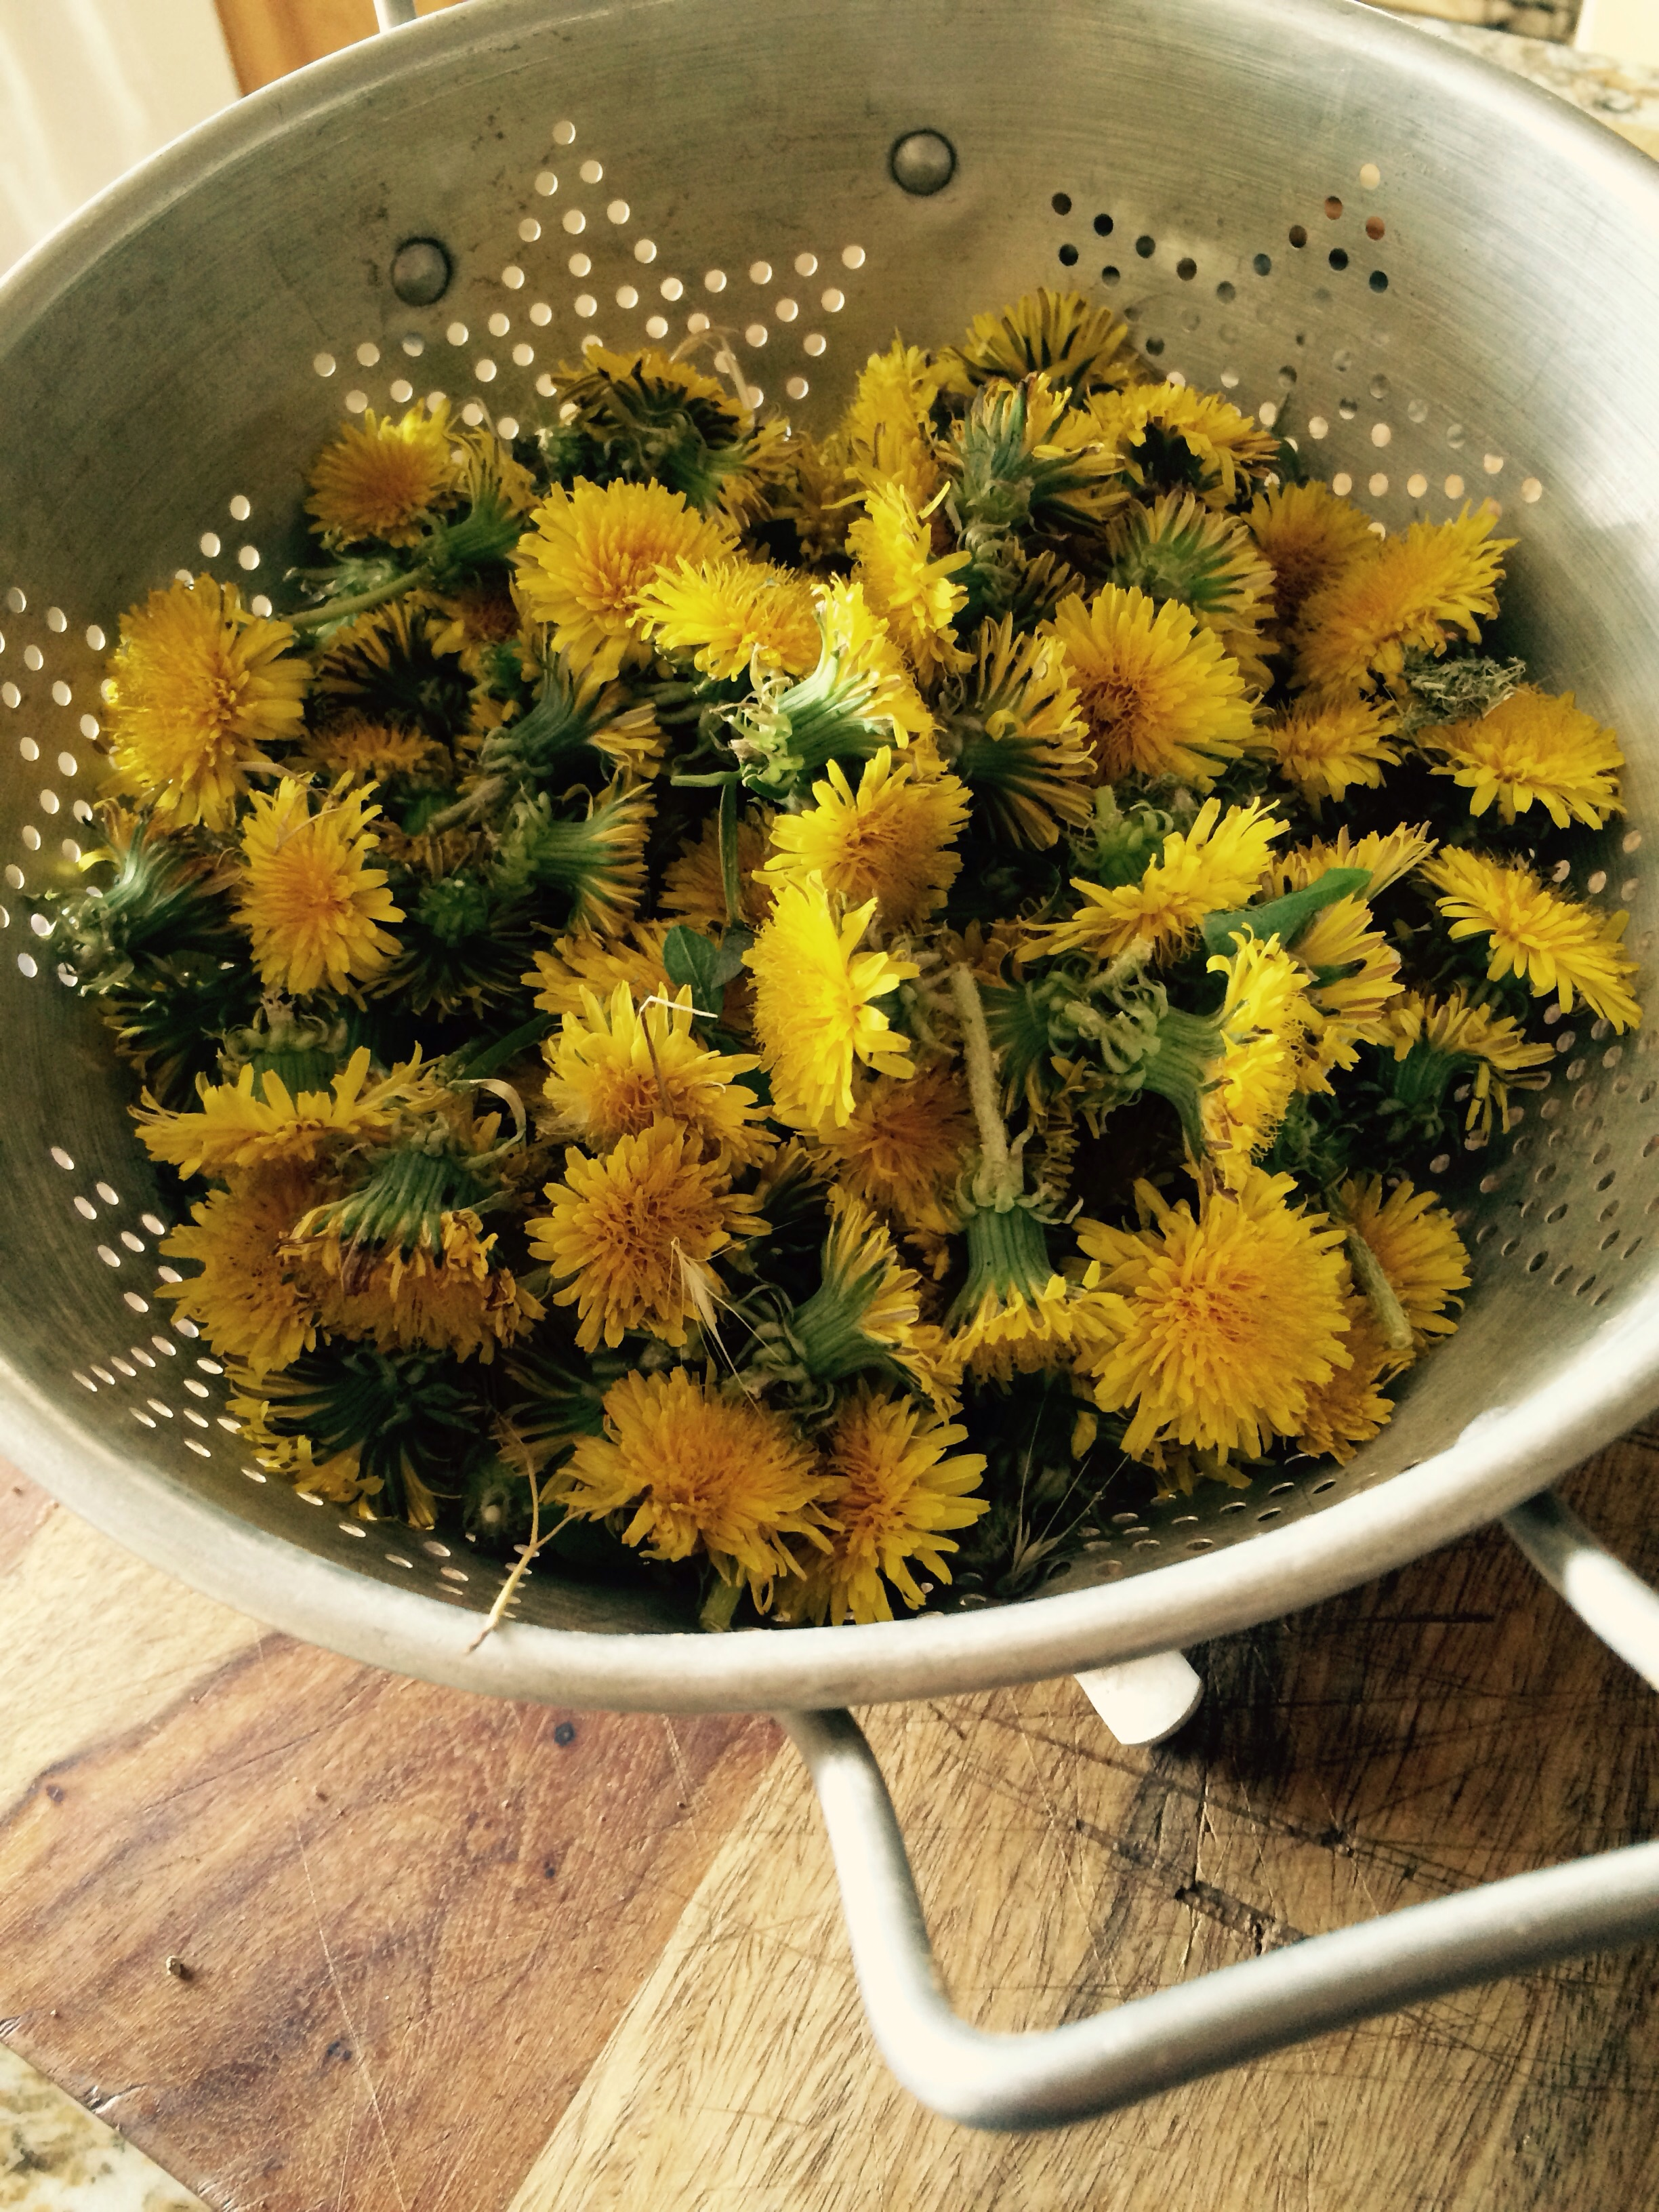 One of my daily chores I try and pick a bowl of these flowers as we are drying them and going to send them to the Joseiphine  porter instatute where they make bio dynamic perpetrations that we use in our gardens